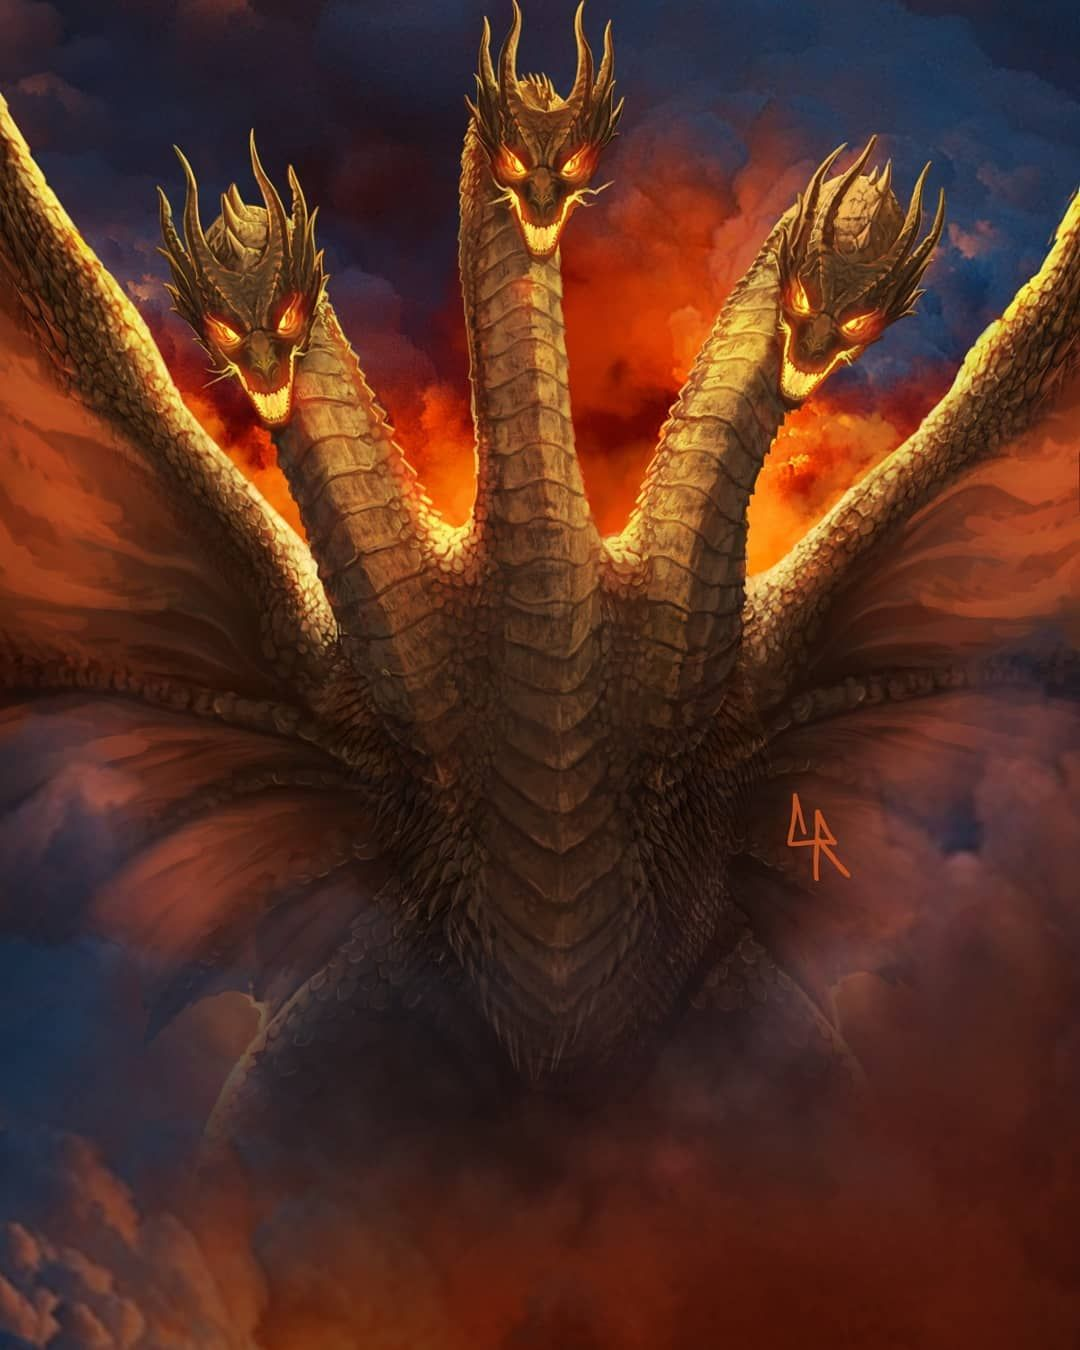 Kevin Chapman On Instagram Here Is A King Ghidorah Painting That Will Be Apart Of My Godzilla Kotm Poster For A Godzilla Mythical Monsters Godzilla Wallpaper